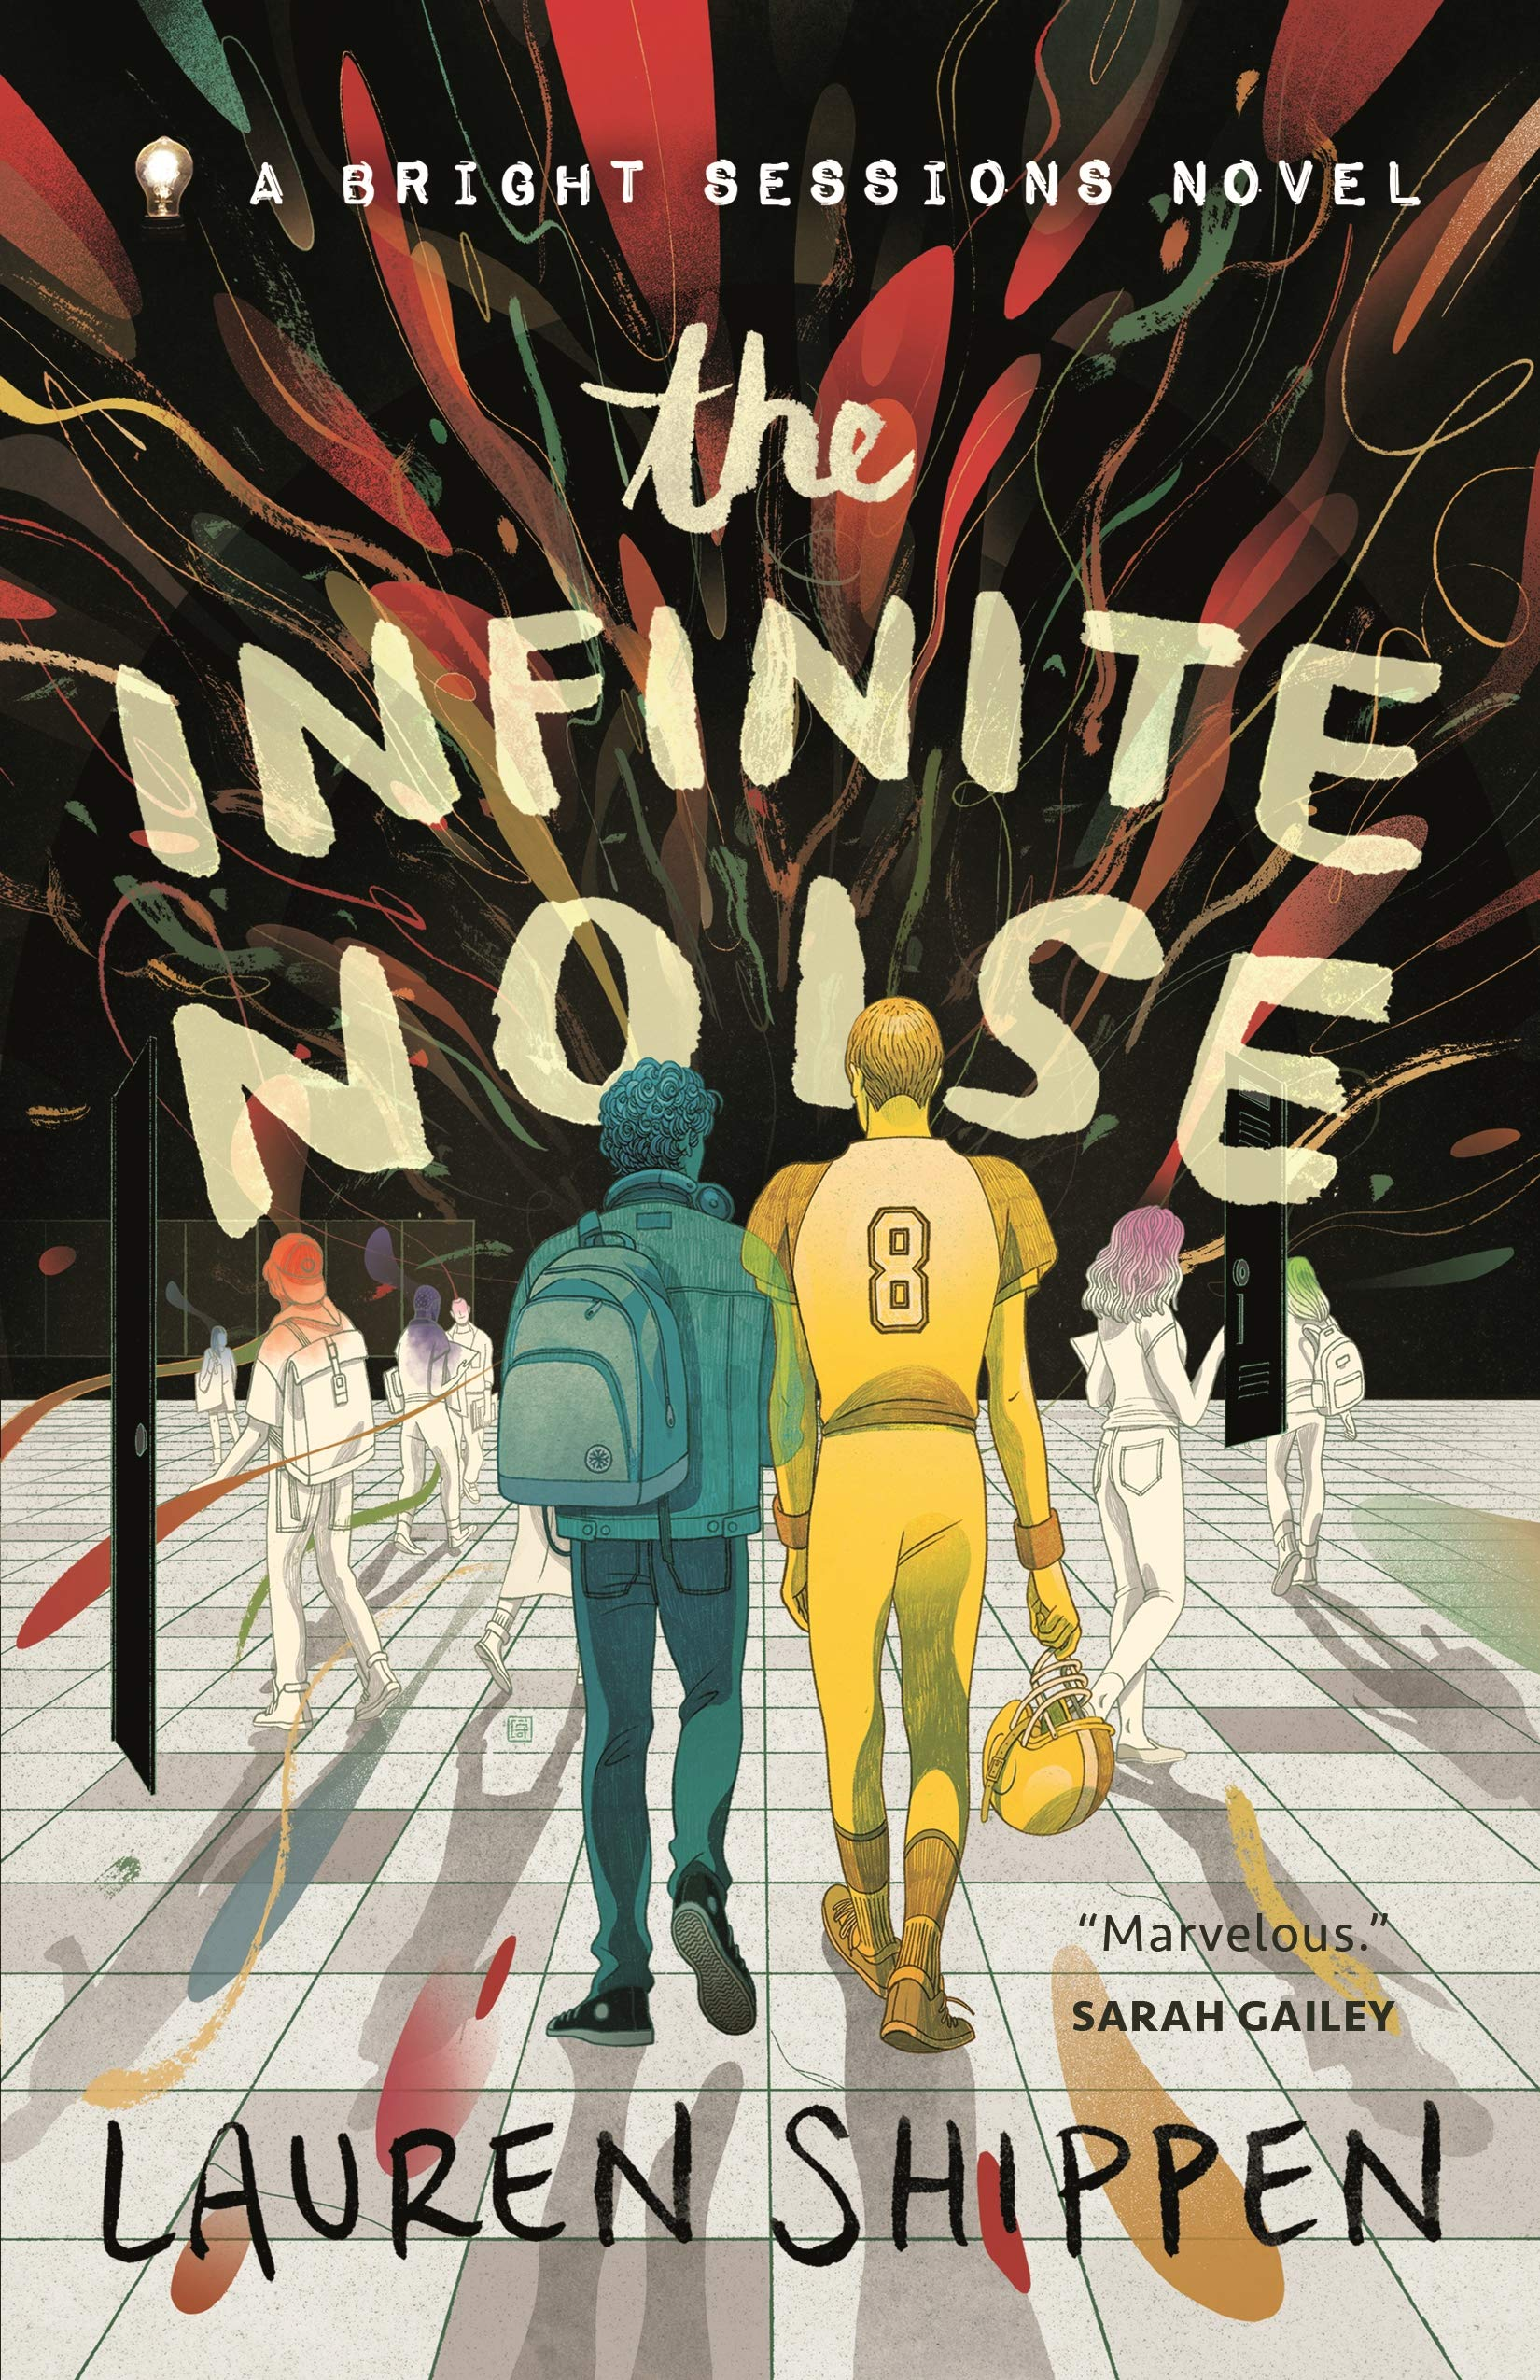 Amazon.com: The Infinite Noise: A Bright Sessions Novel (The ...